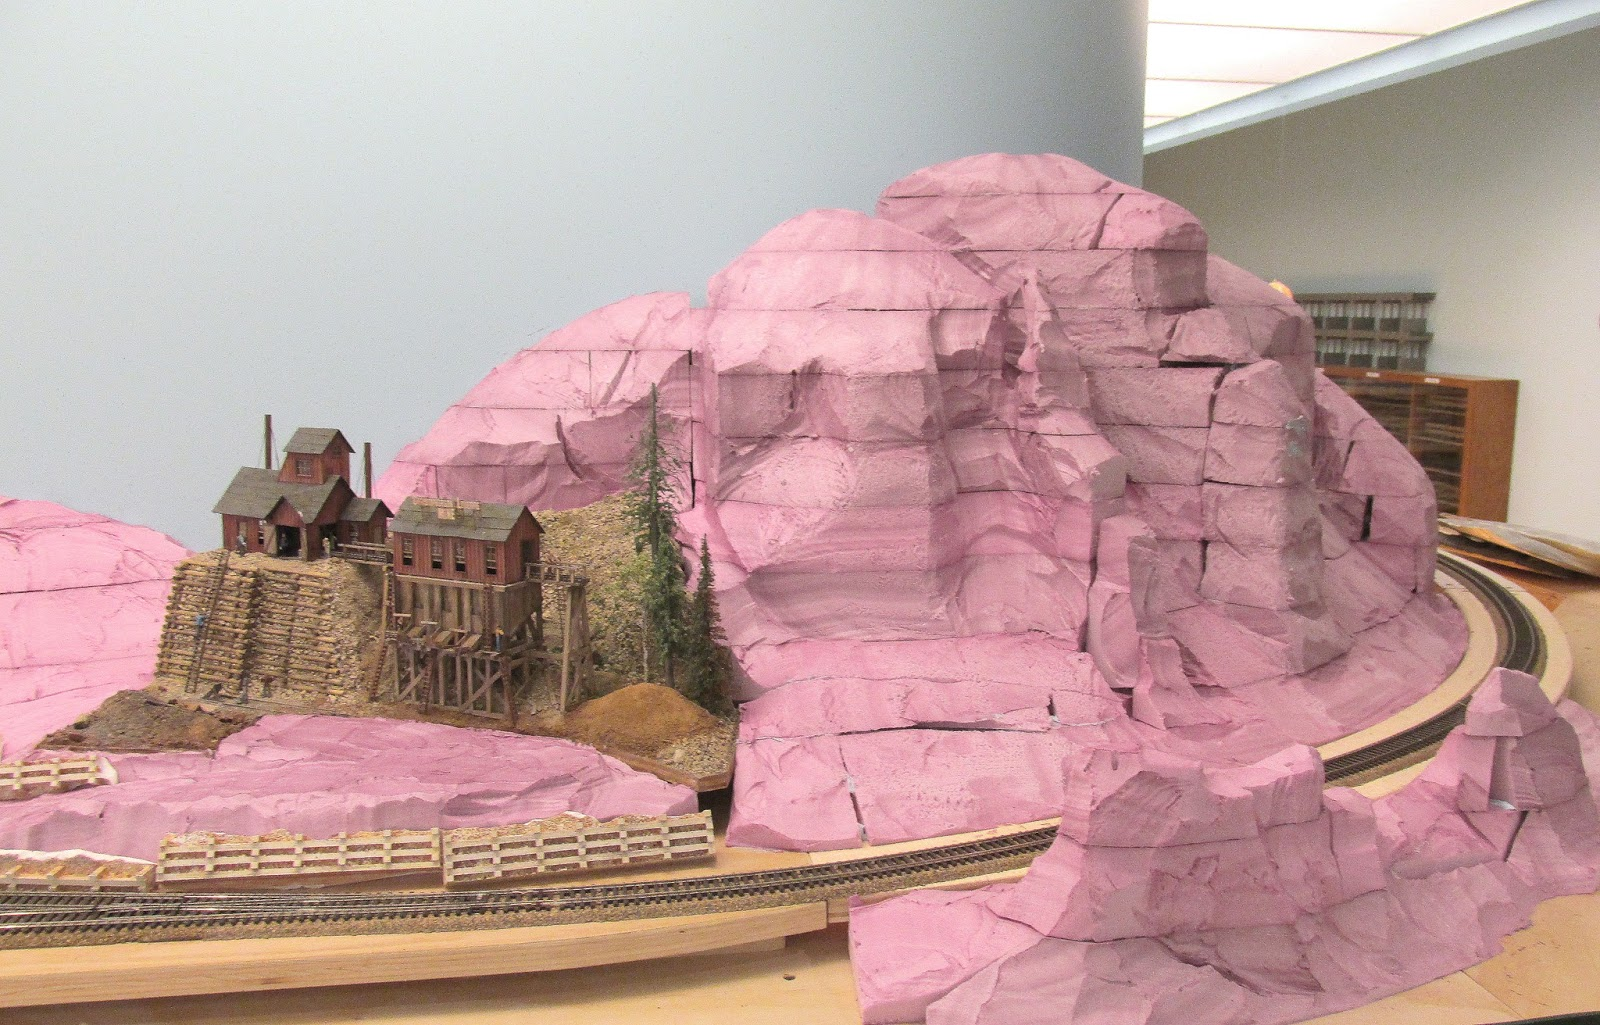 The Art of Todd Gamble: Massive HO-scale Mountain Ready